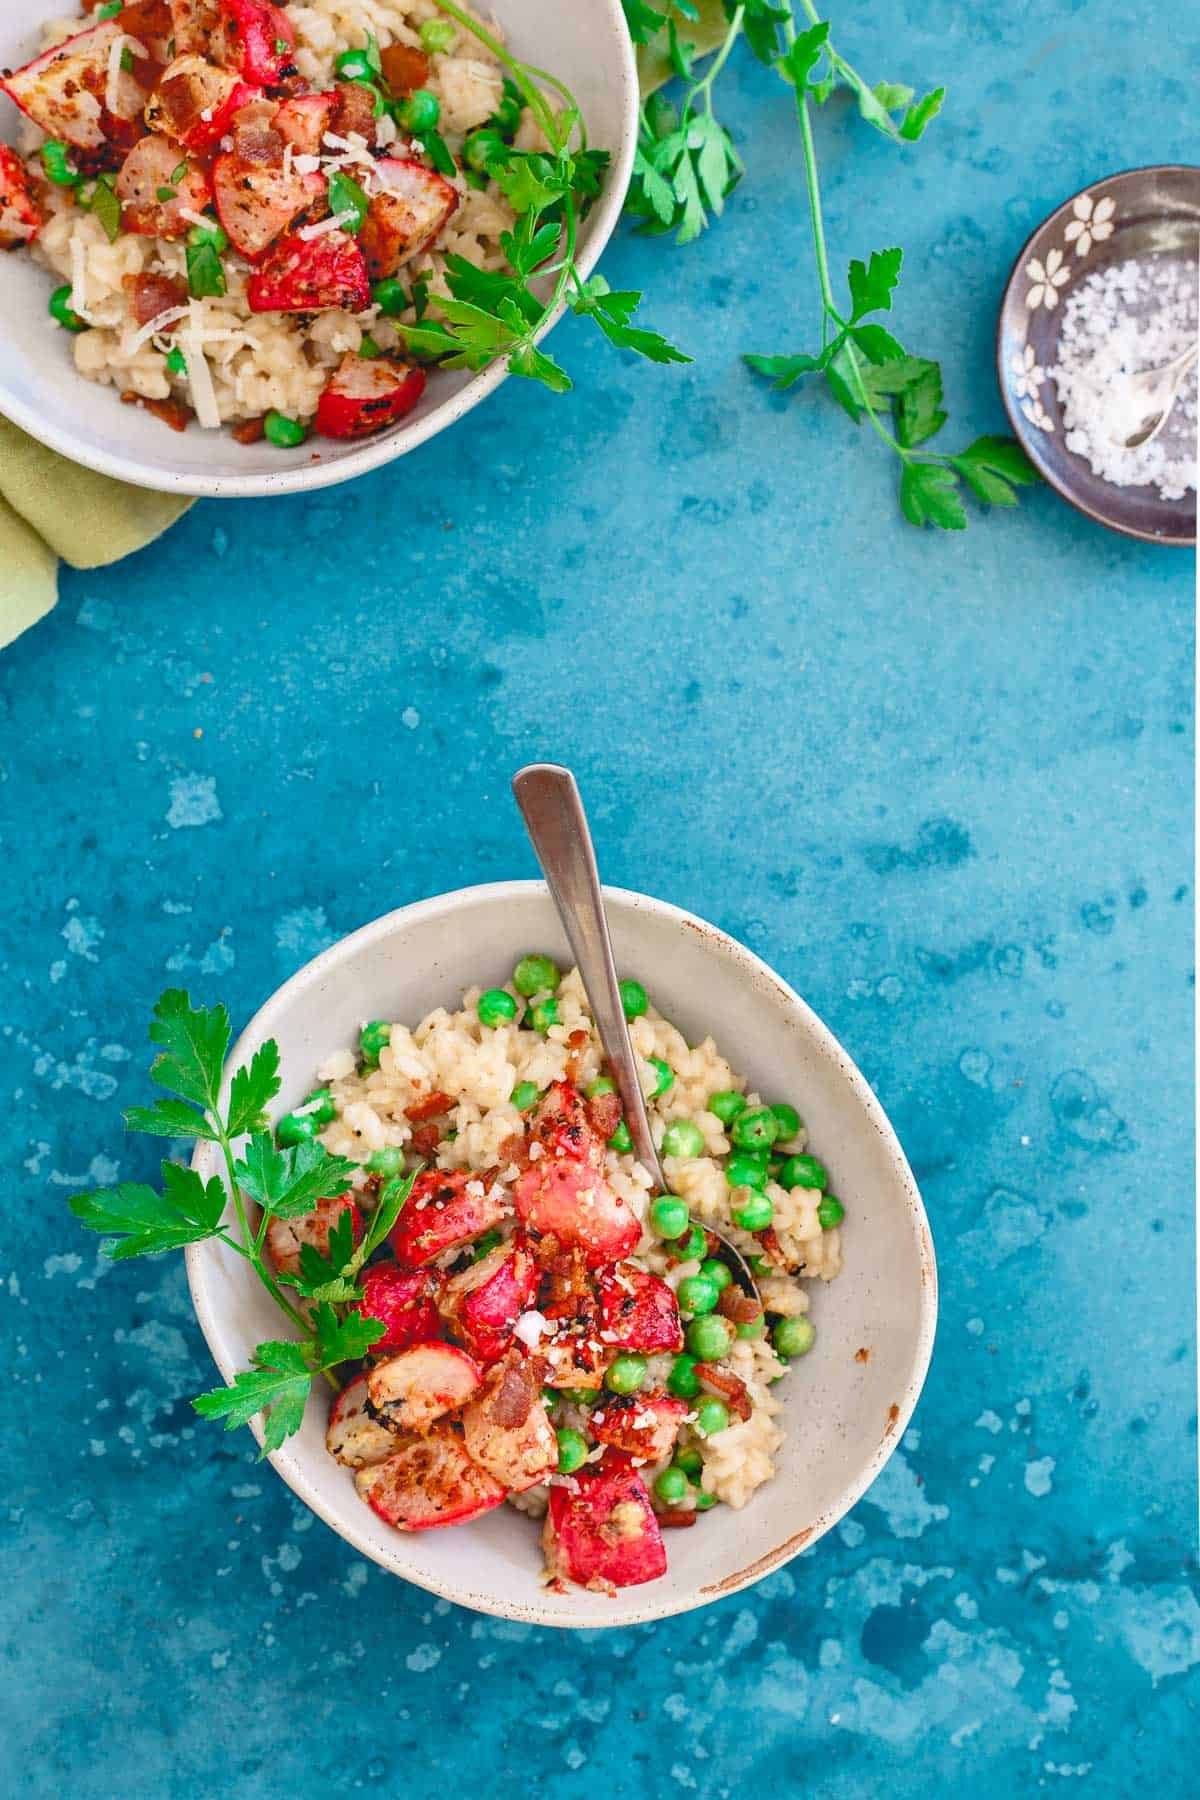 Citrus infused creamy arborio rice is tossed with fresh spring peas and Meyer lemon dijon roasted radishes. Topped with crumbly bacon and freshly grated parmesan, this is risotto is spring comfort food at its best!